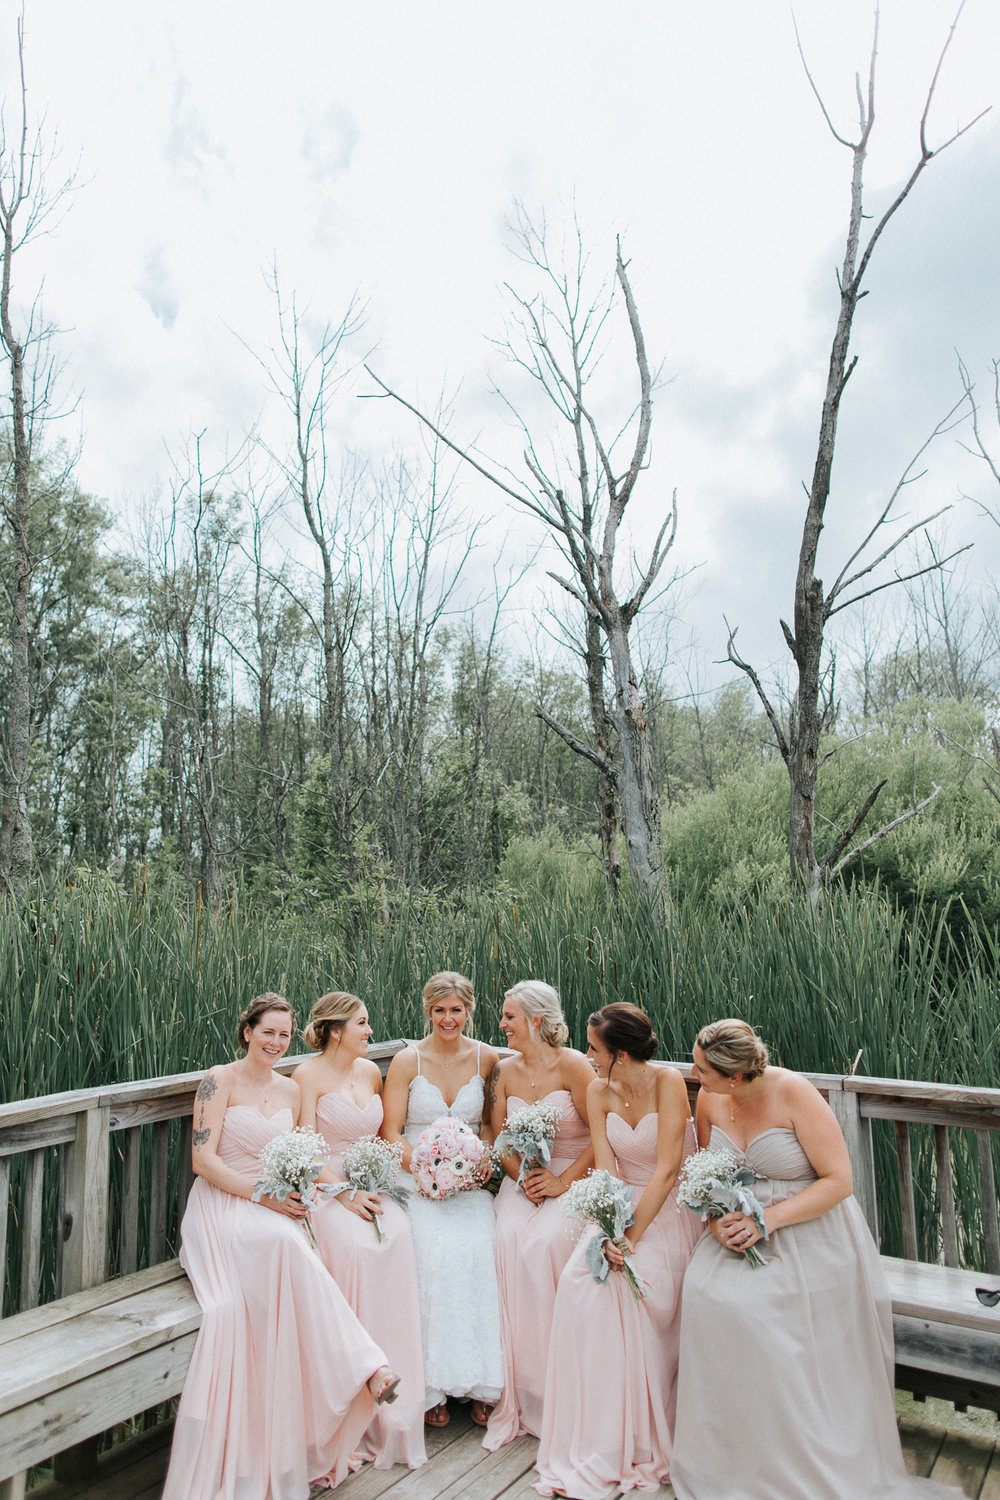 MilwaukeeWeddingPartyBridesmaids1